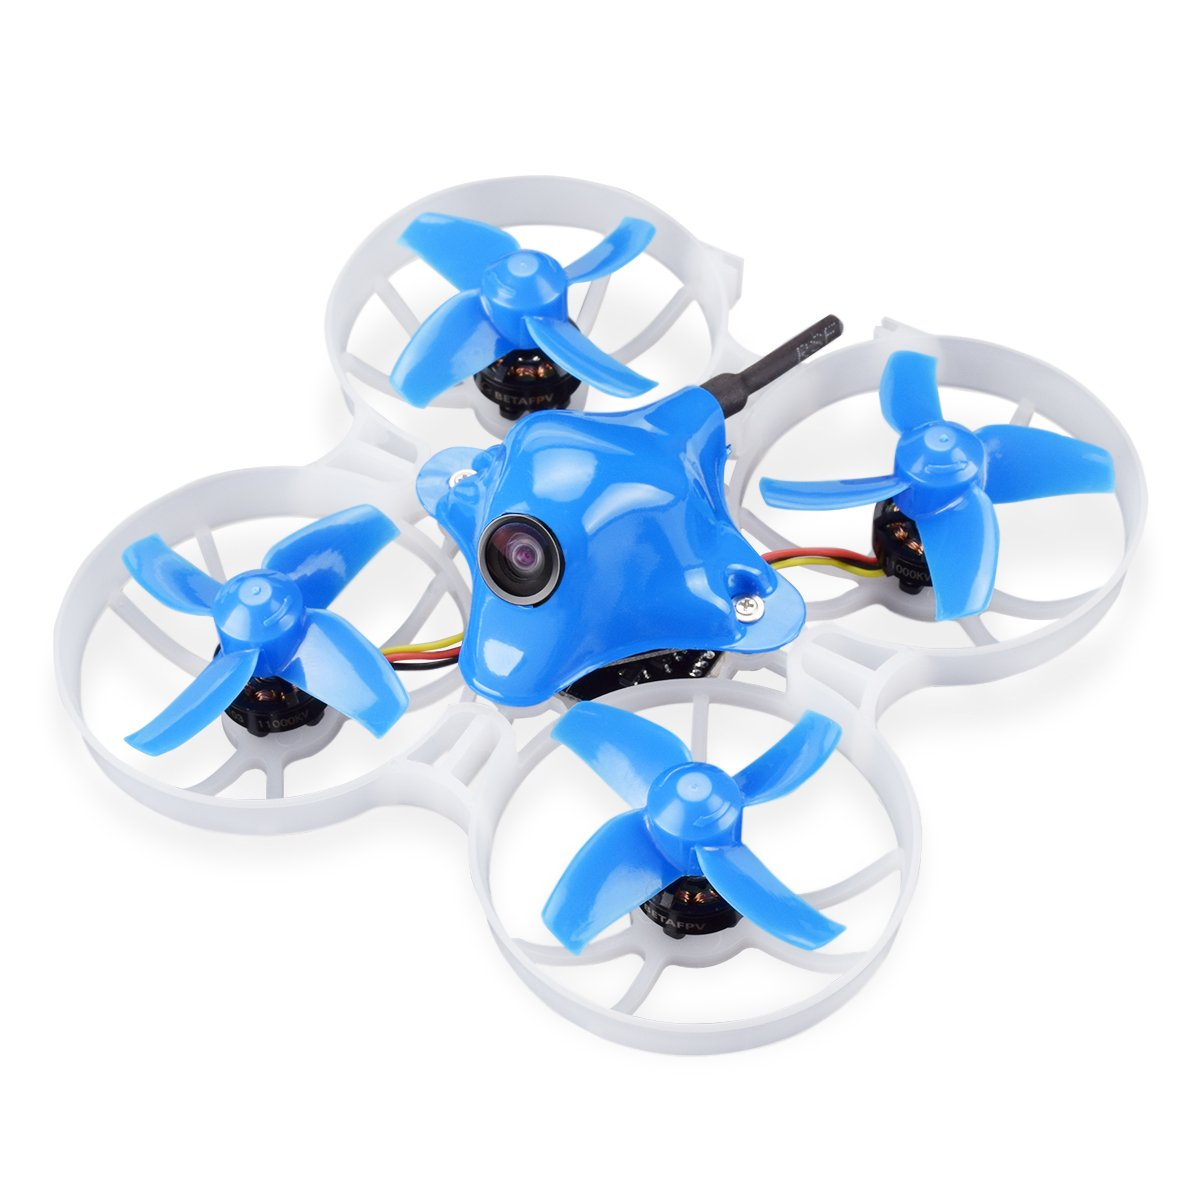 Beta75X 2S Brusheless BNF Whoop Quadcopter S-FHSS(XT30仕様)完成機